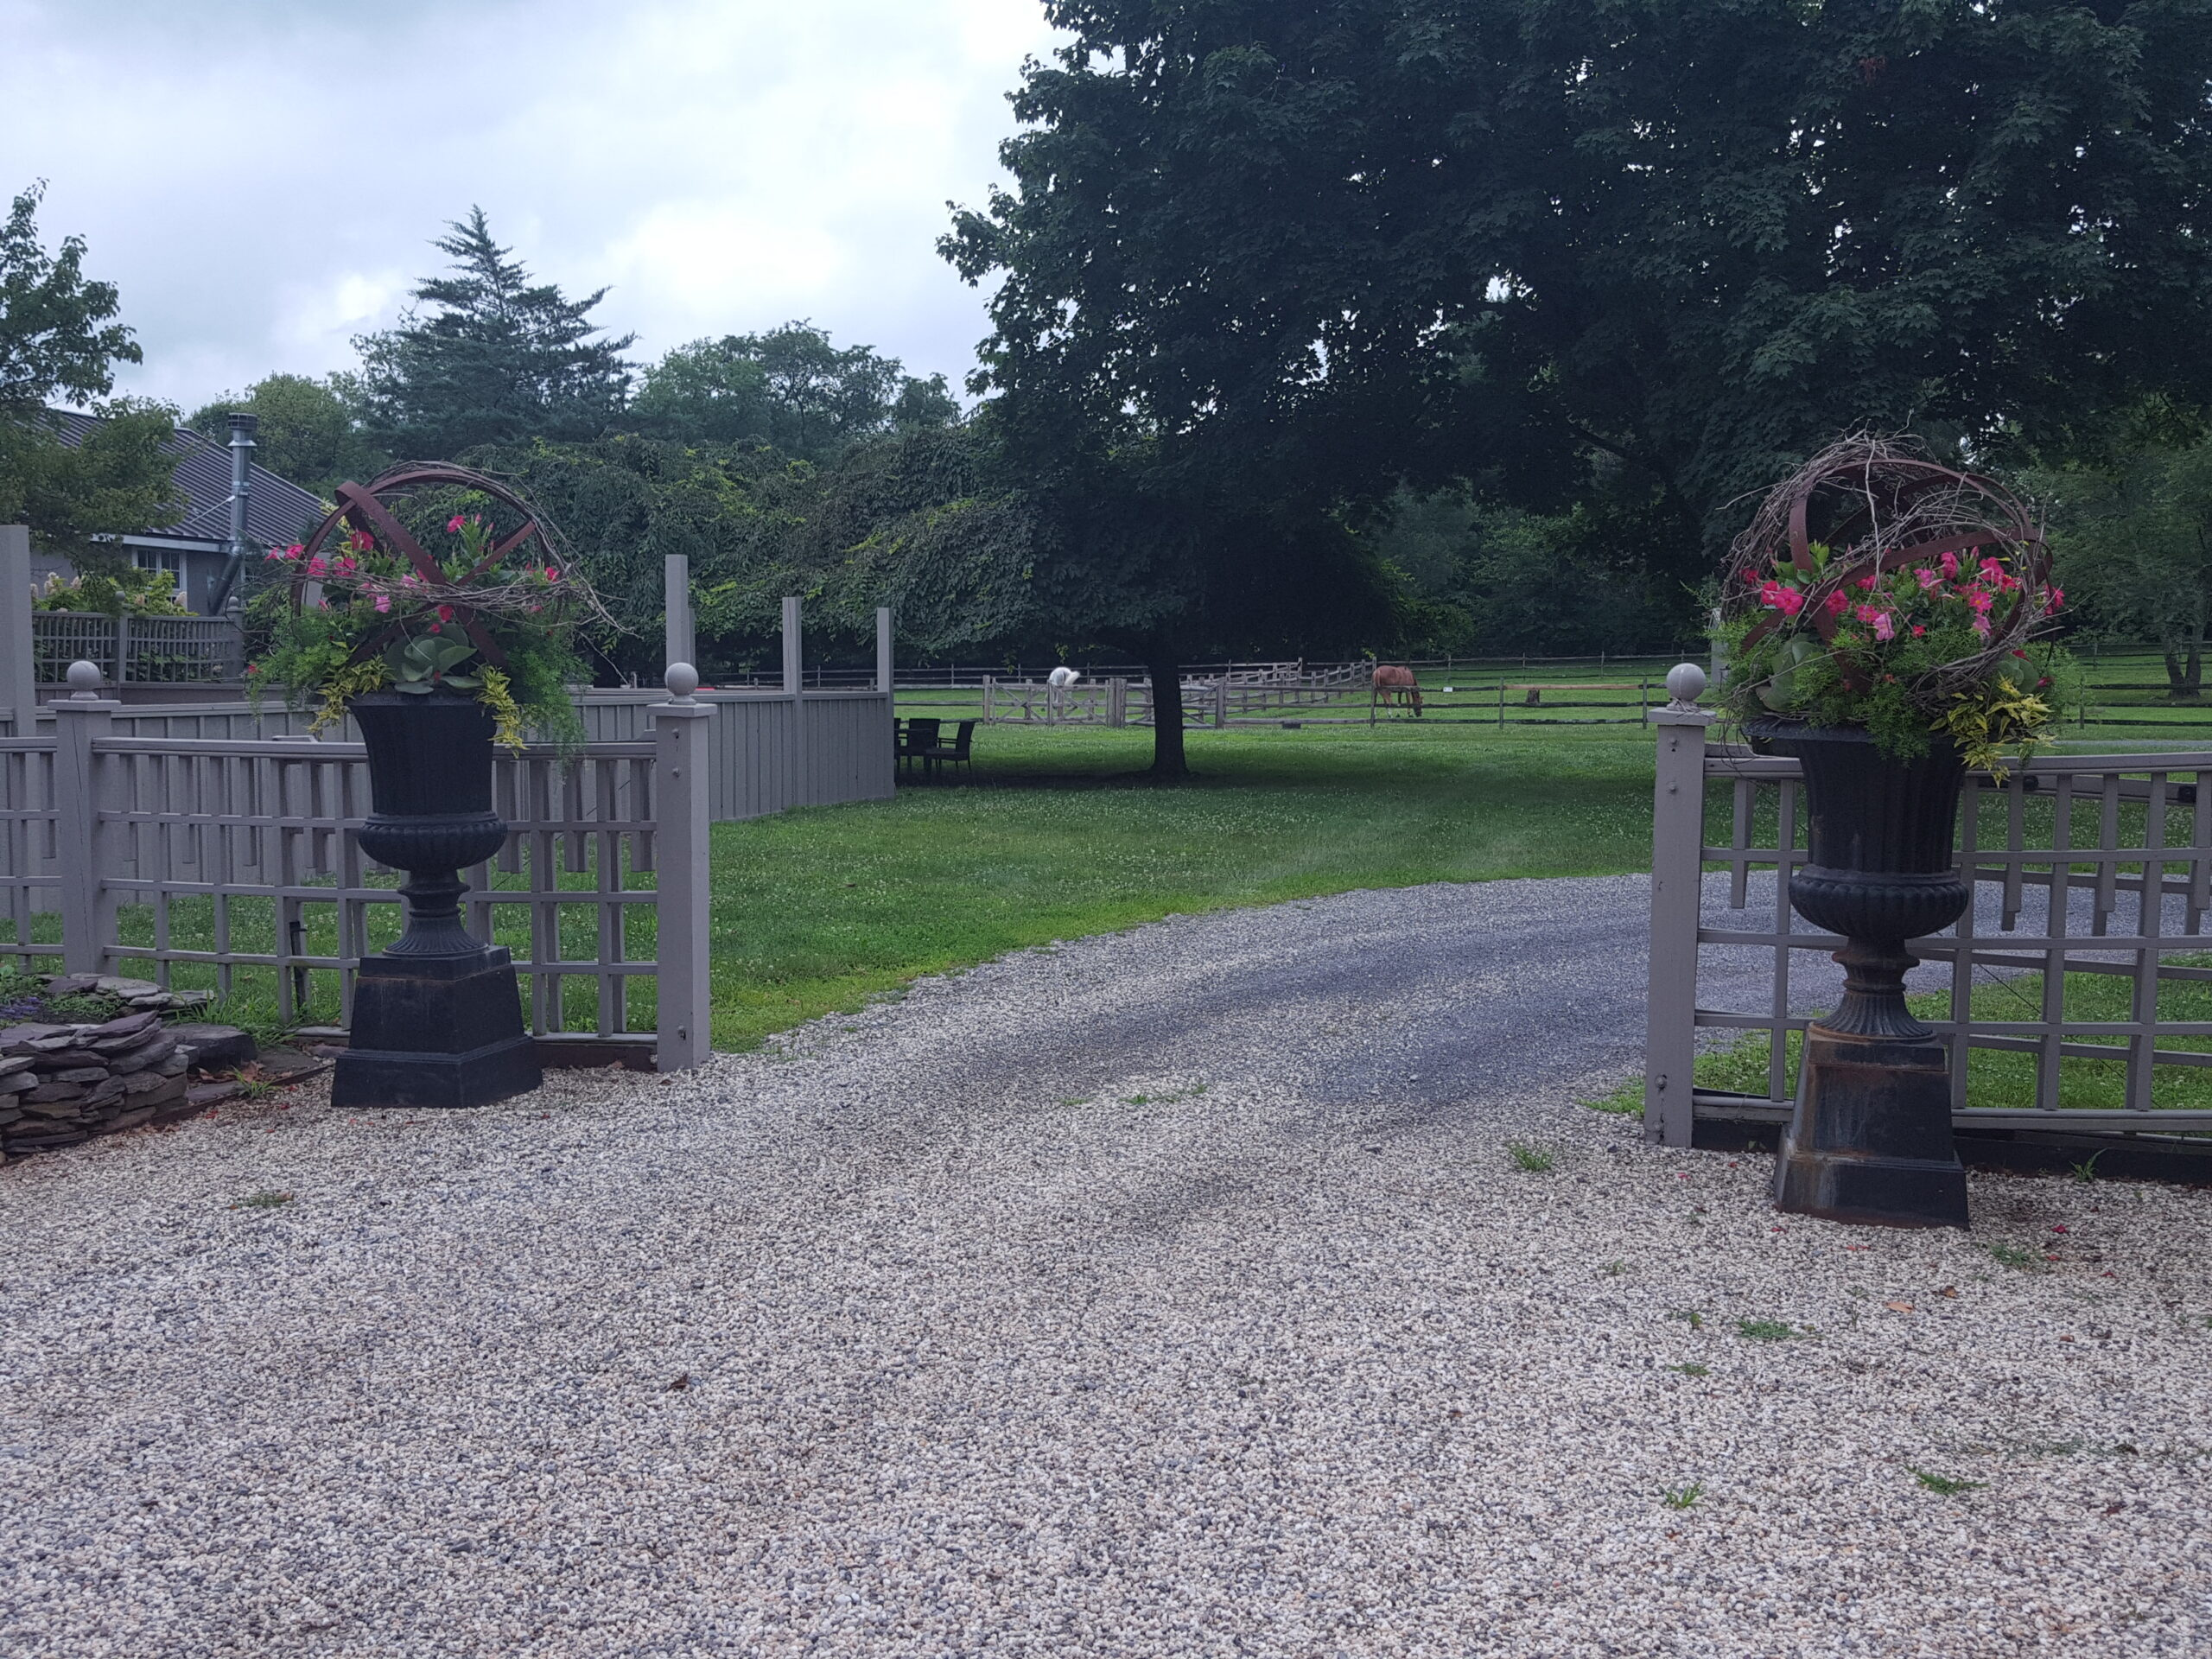 Iron Planters and Sculpture